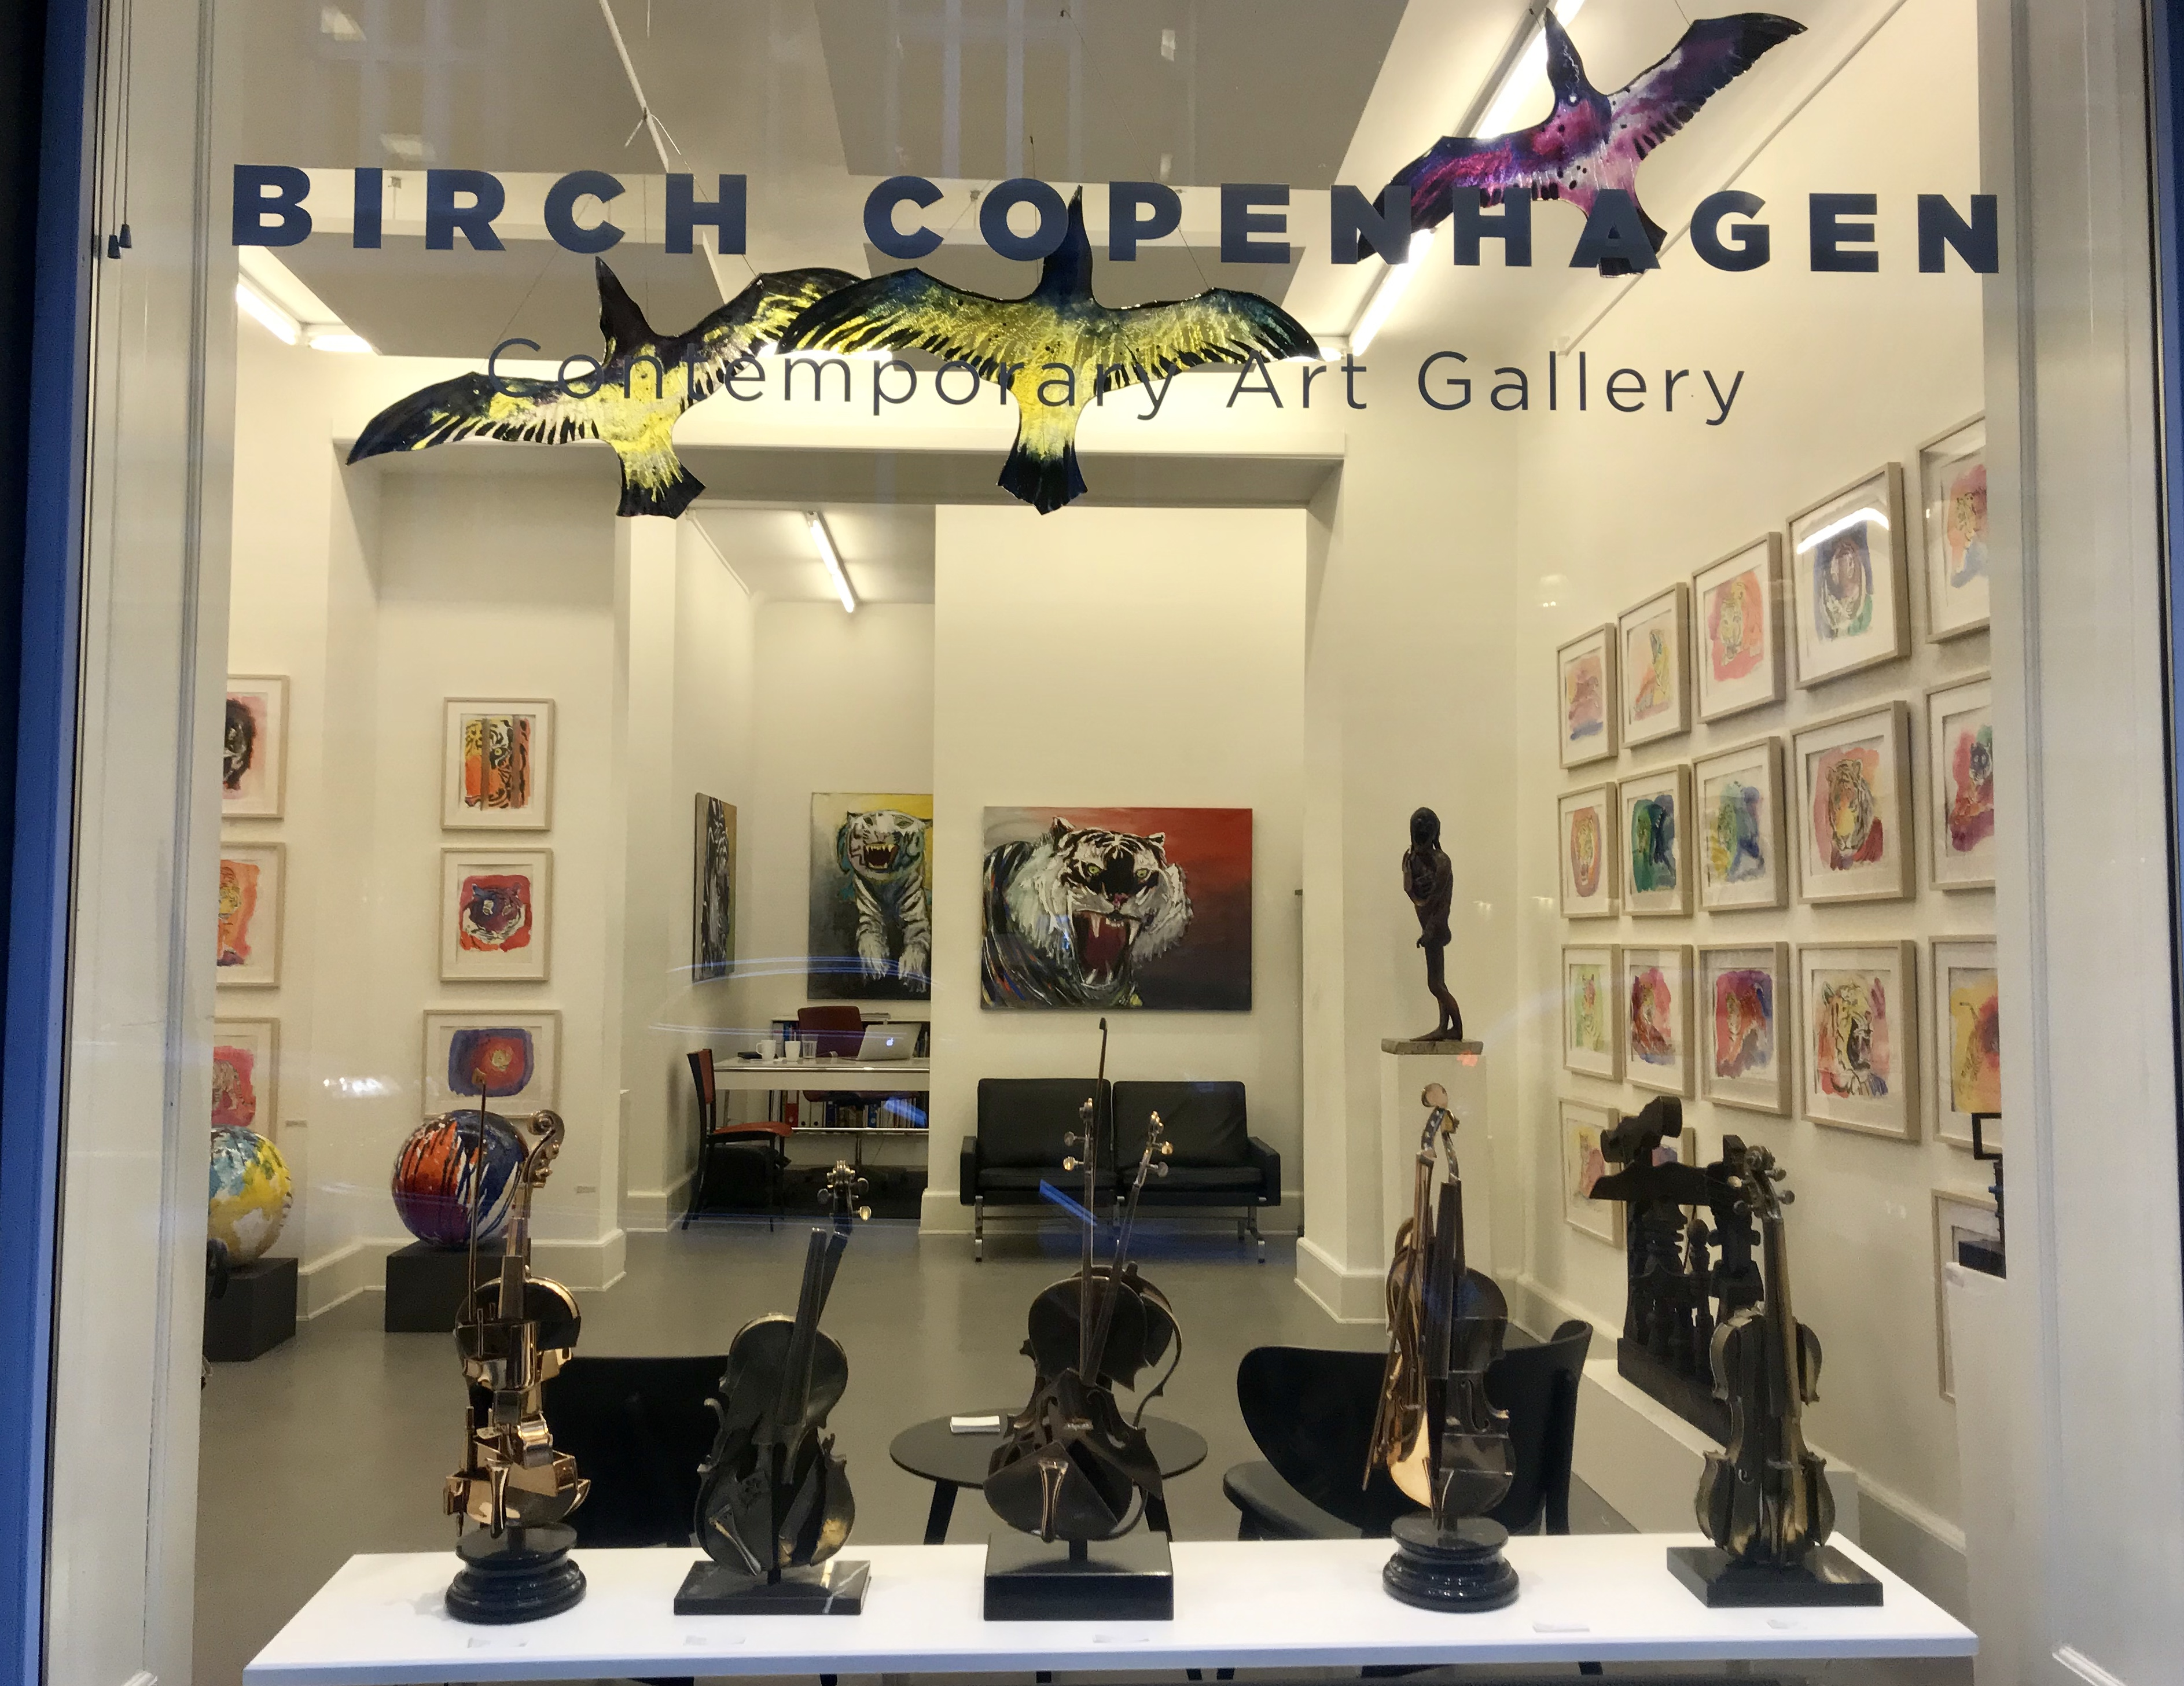 Birchgalerie, one man show, exhibition, tugere, watercolors